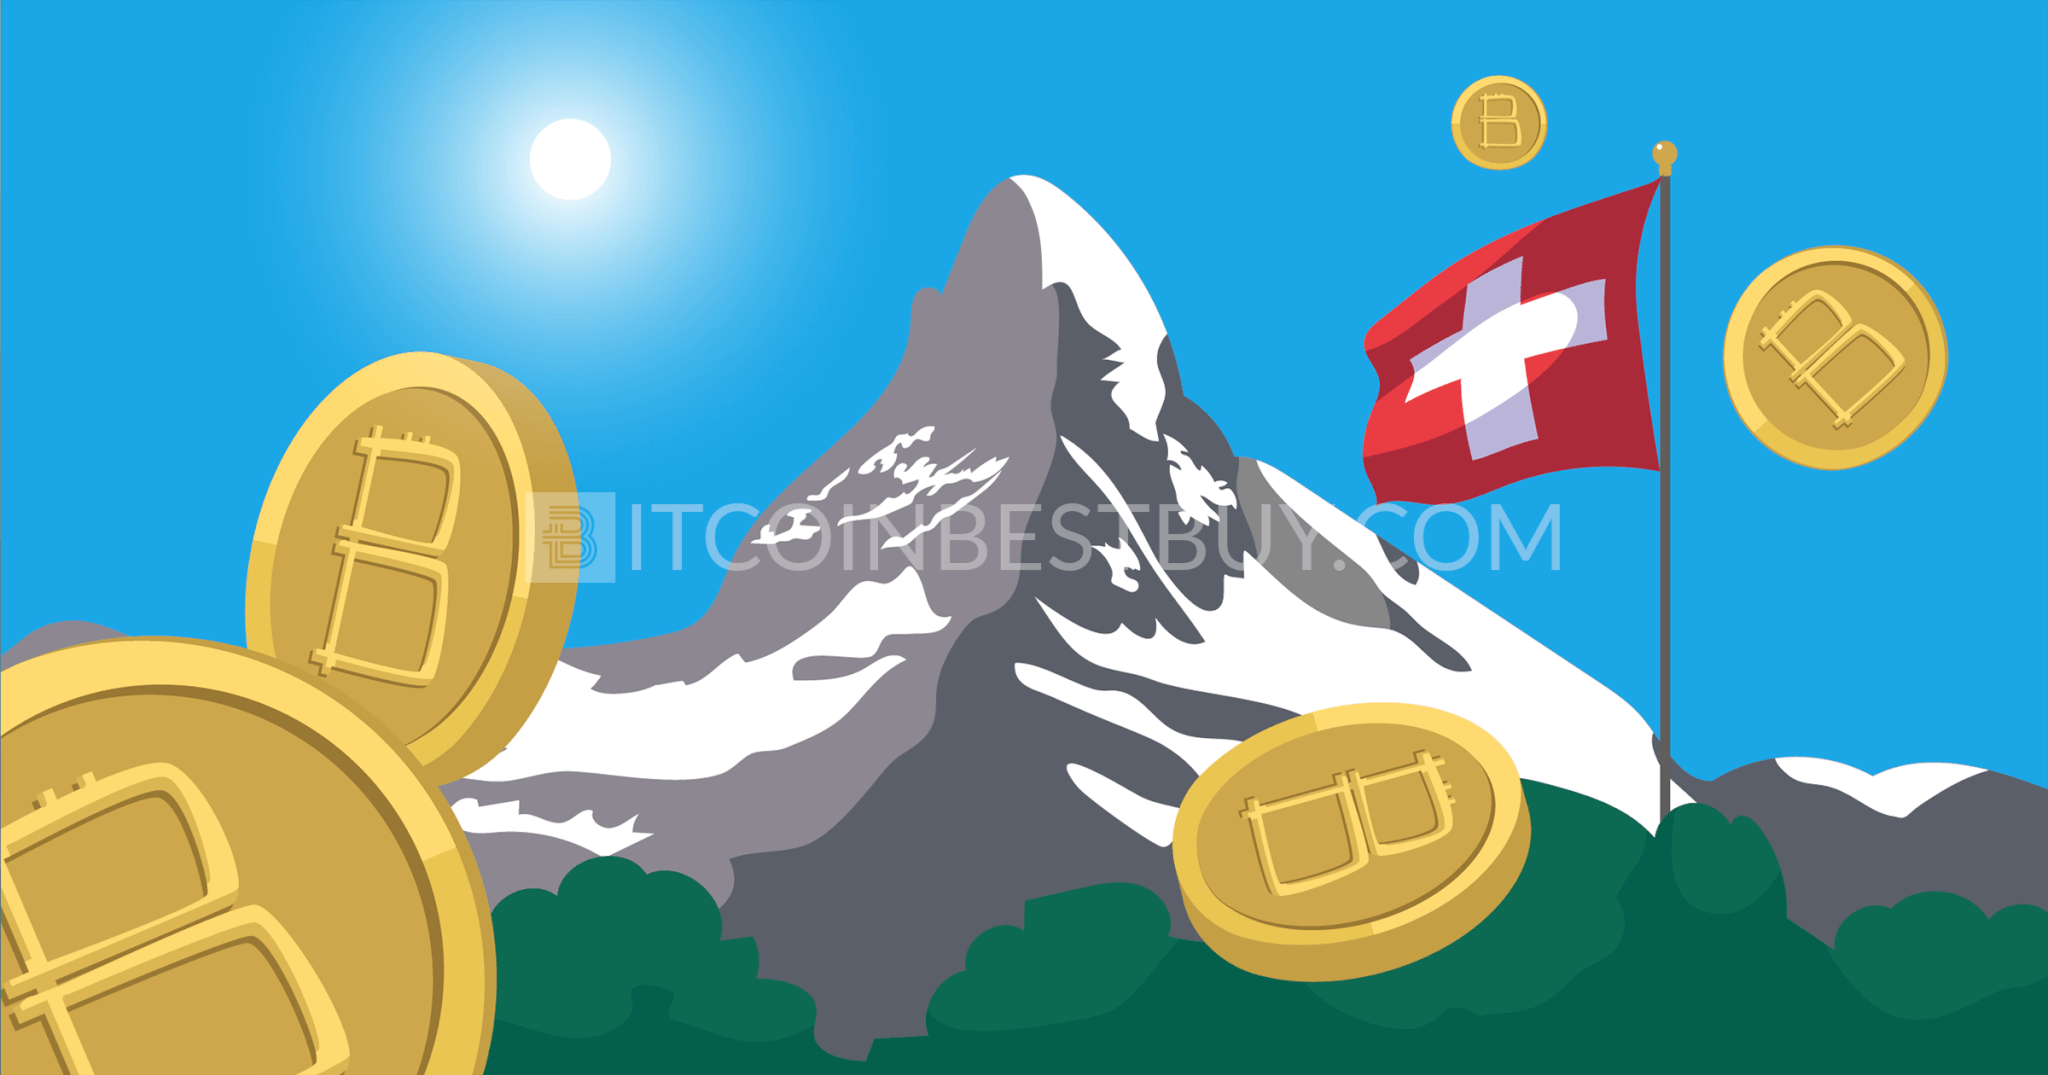 Best bitcoin exchanges in Switzerland